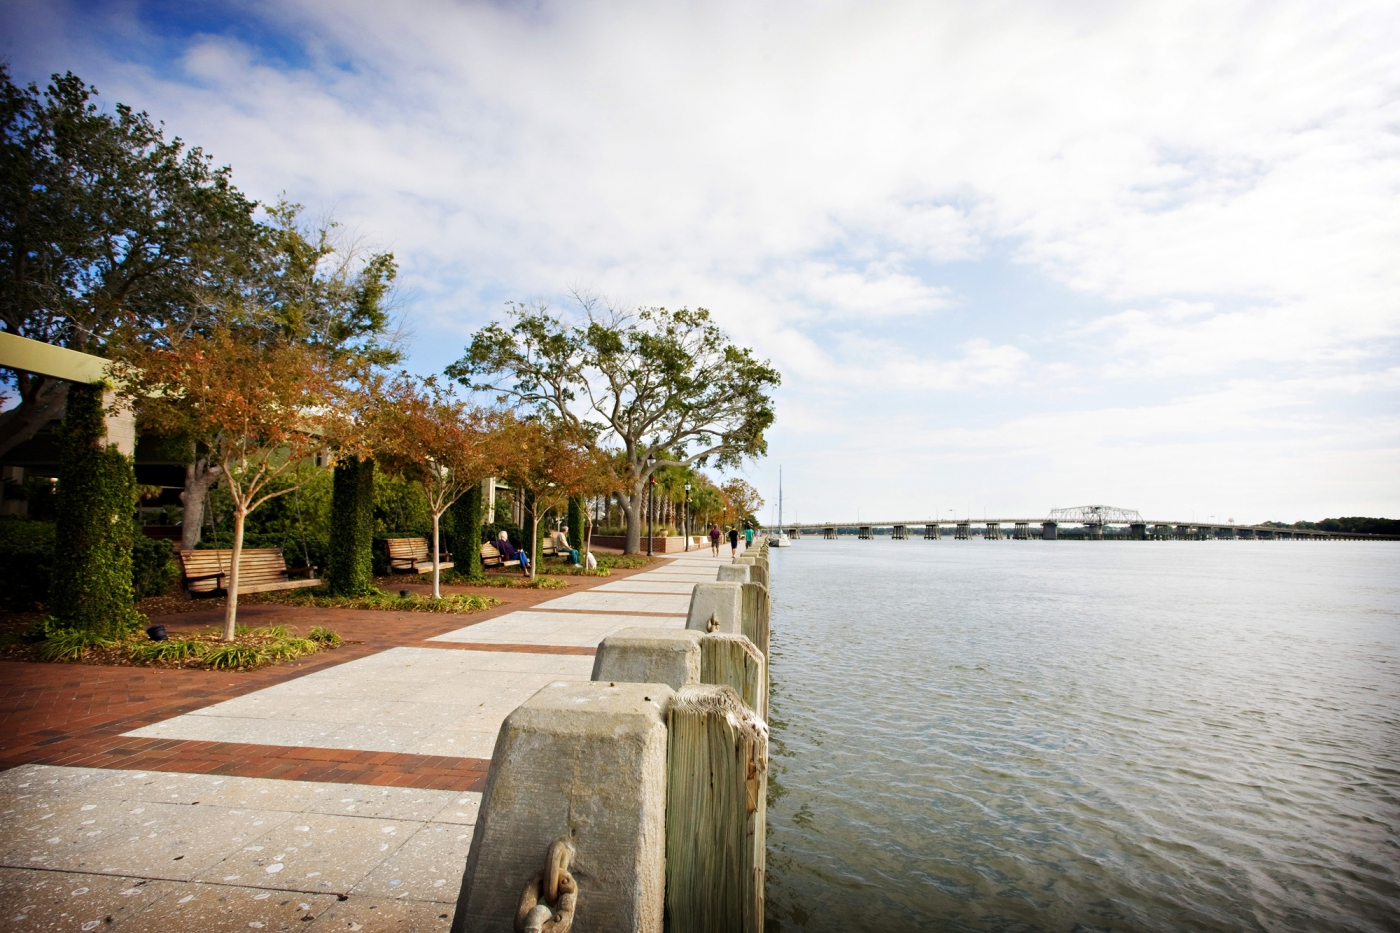 Take in all the South Carolina beauty from the charming benches of Beaufort Park.